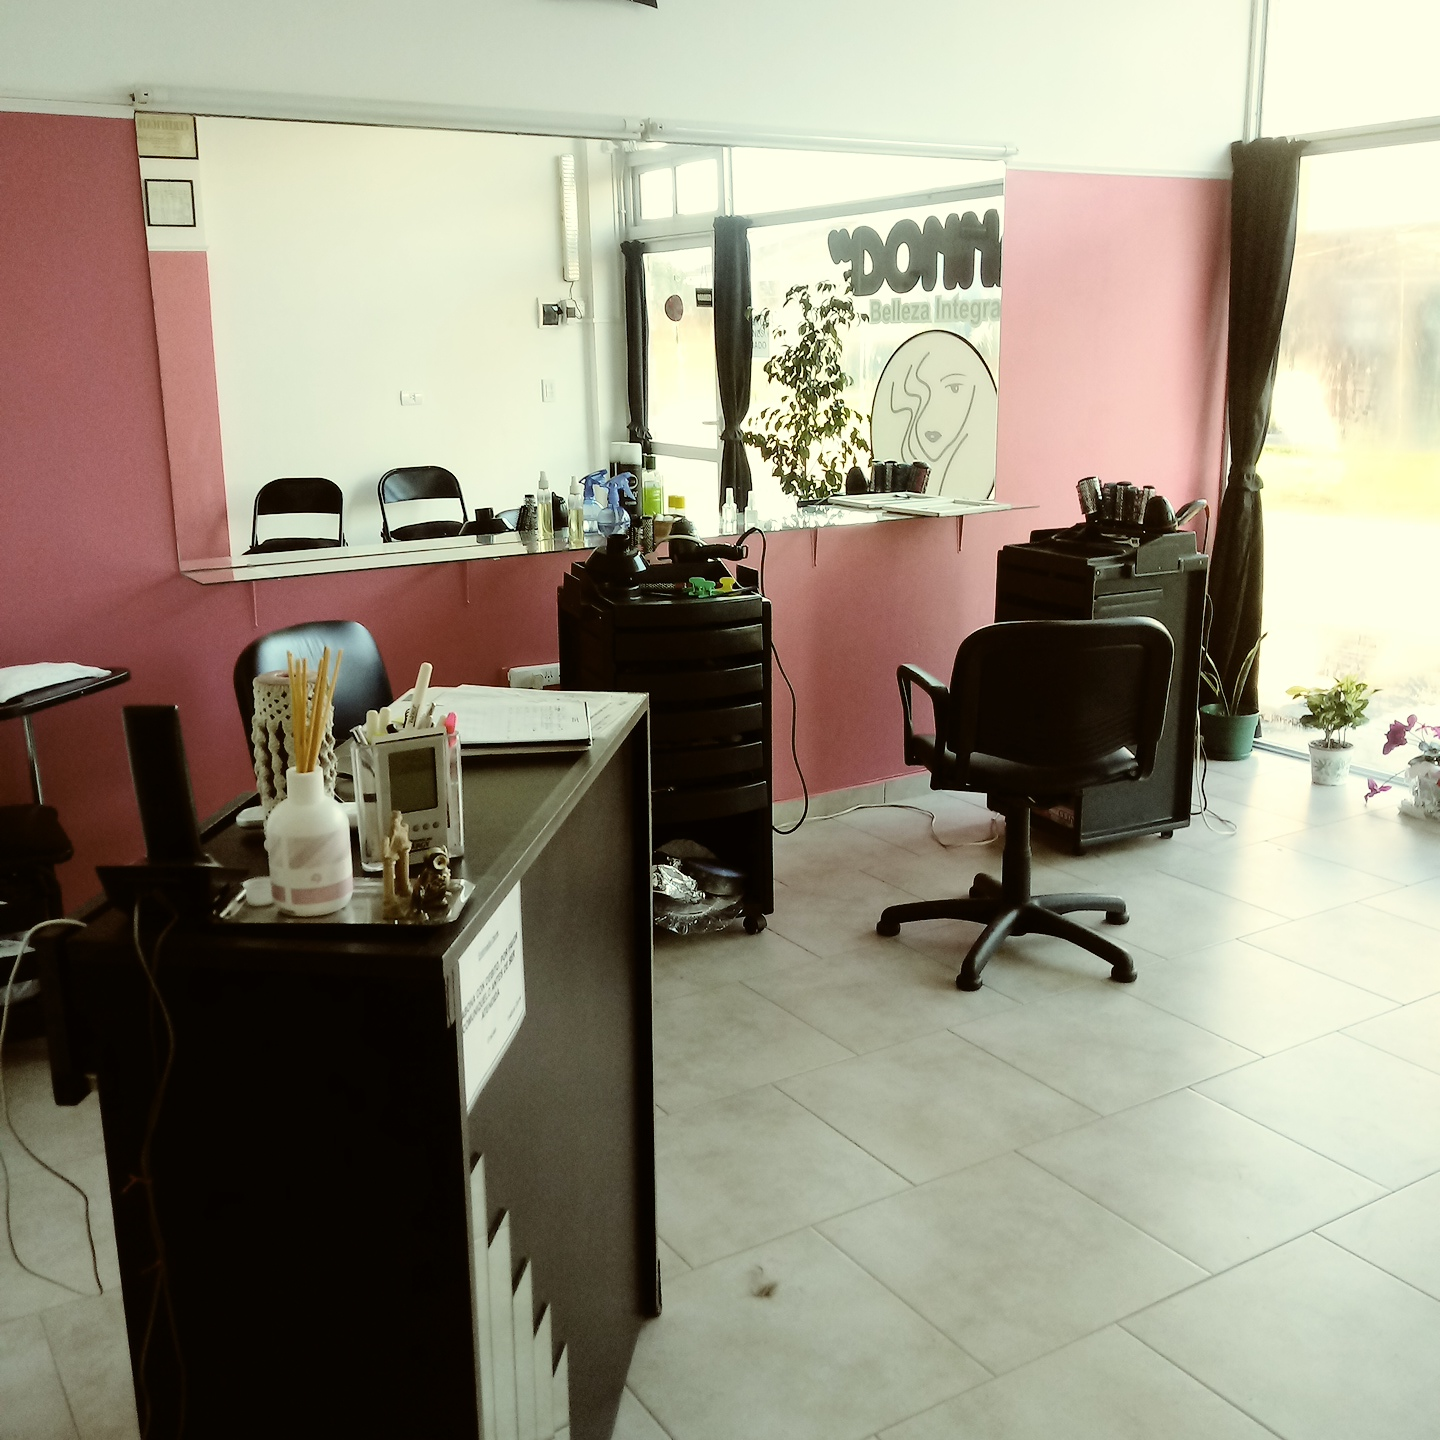 Donna Instituto de Belleza Integral